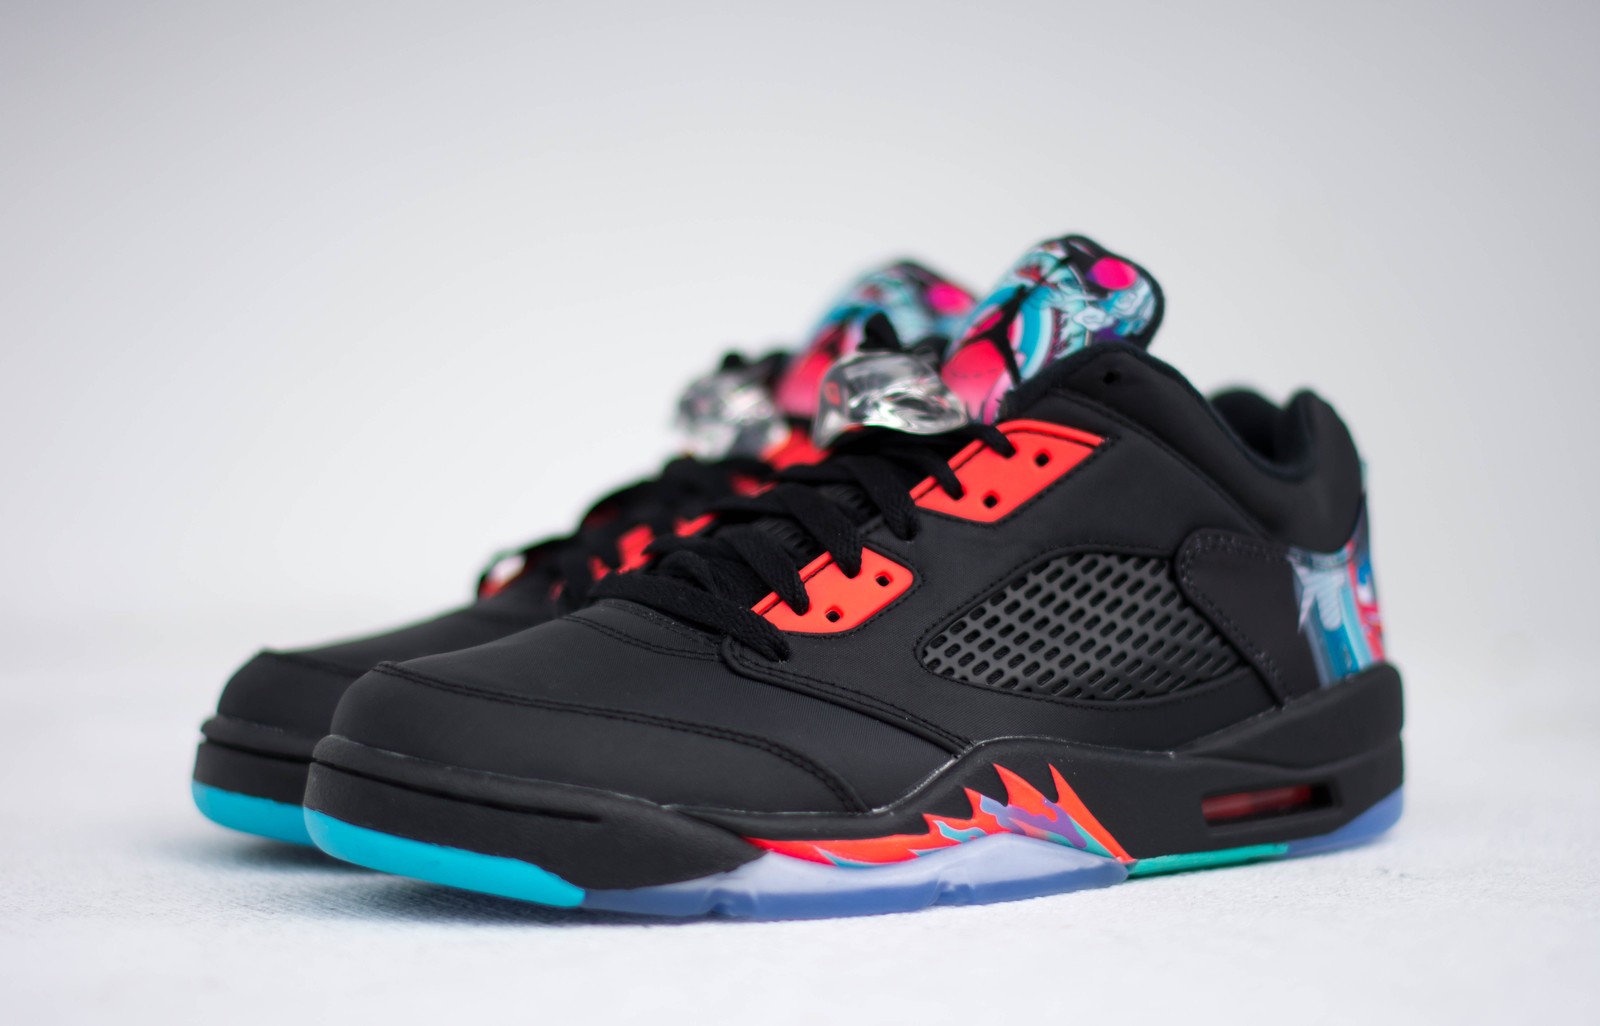 840475-060-air-jordan-5-low-chinese-new-year-2